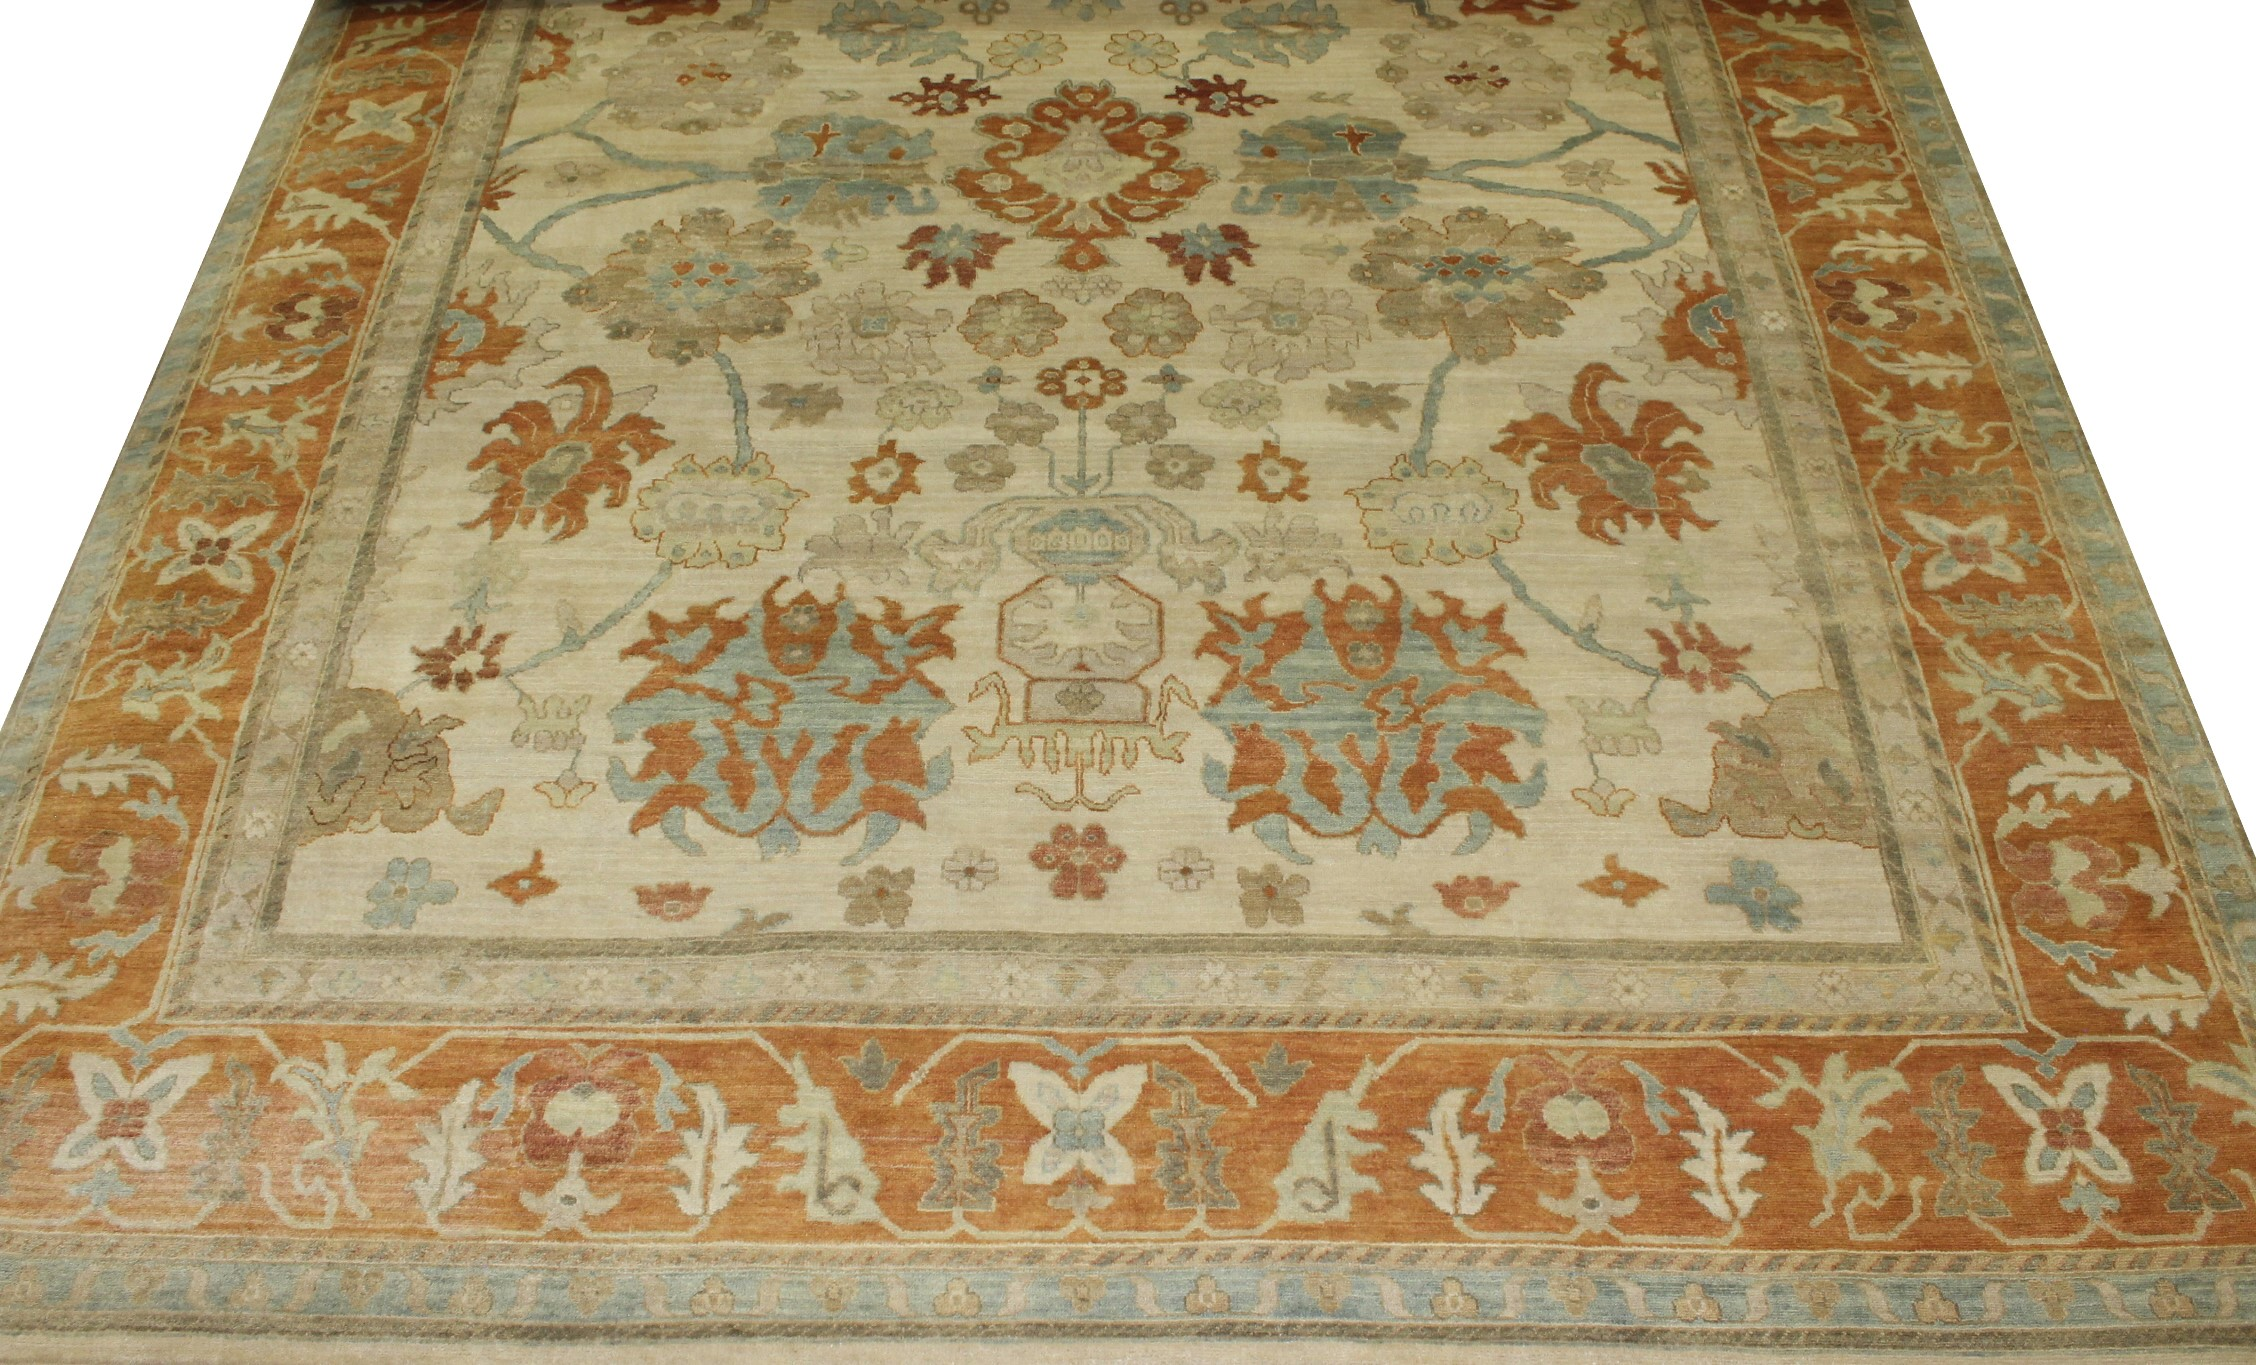 10x14 Oushak Hand Knotted Wool Area Rug - MR18543